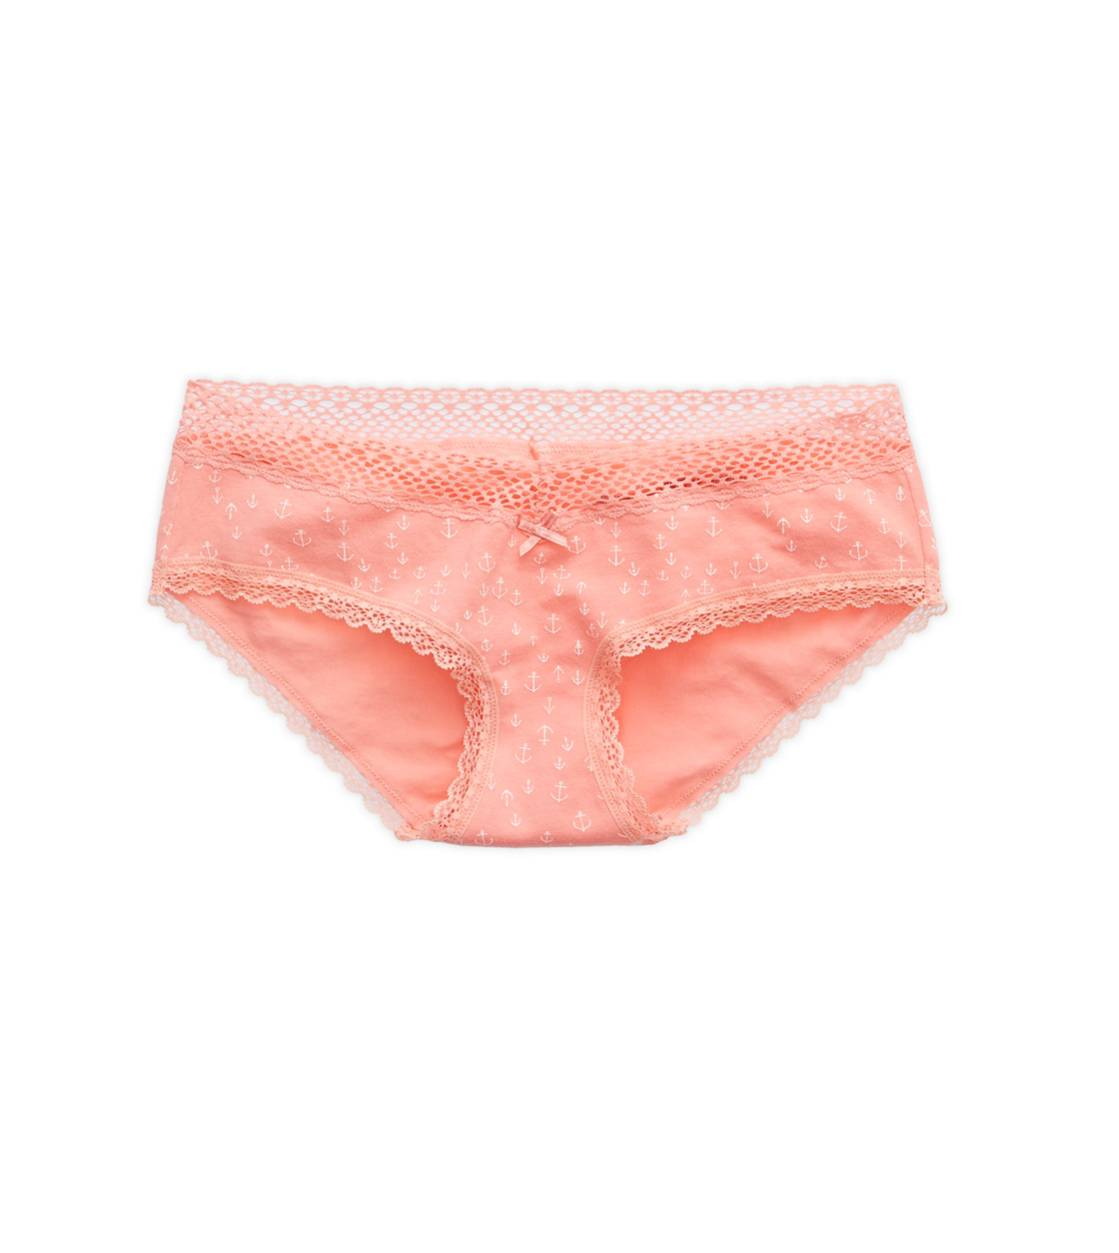 Coral Cottage Aerie for AEO Ruched Boybrief